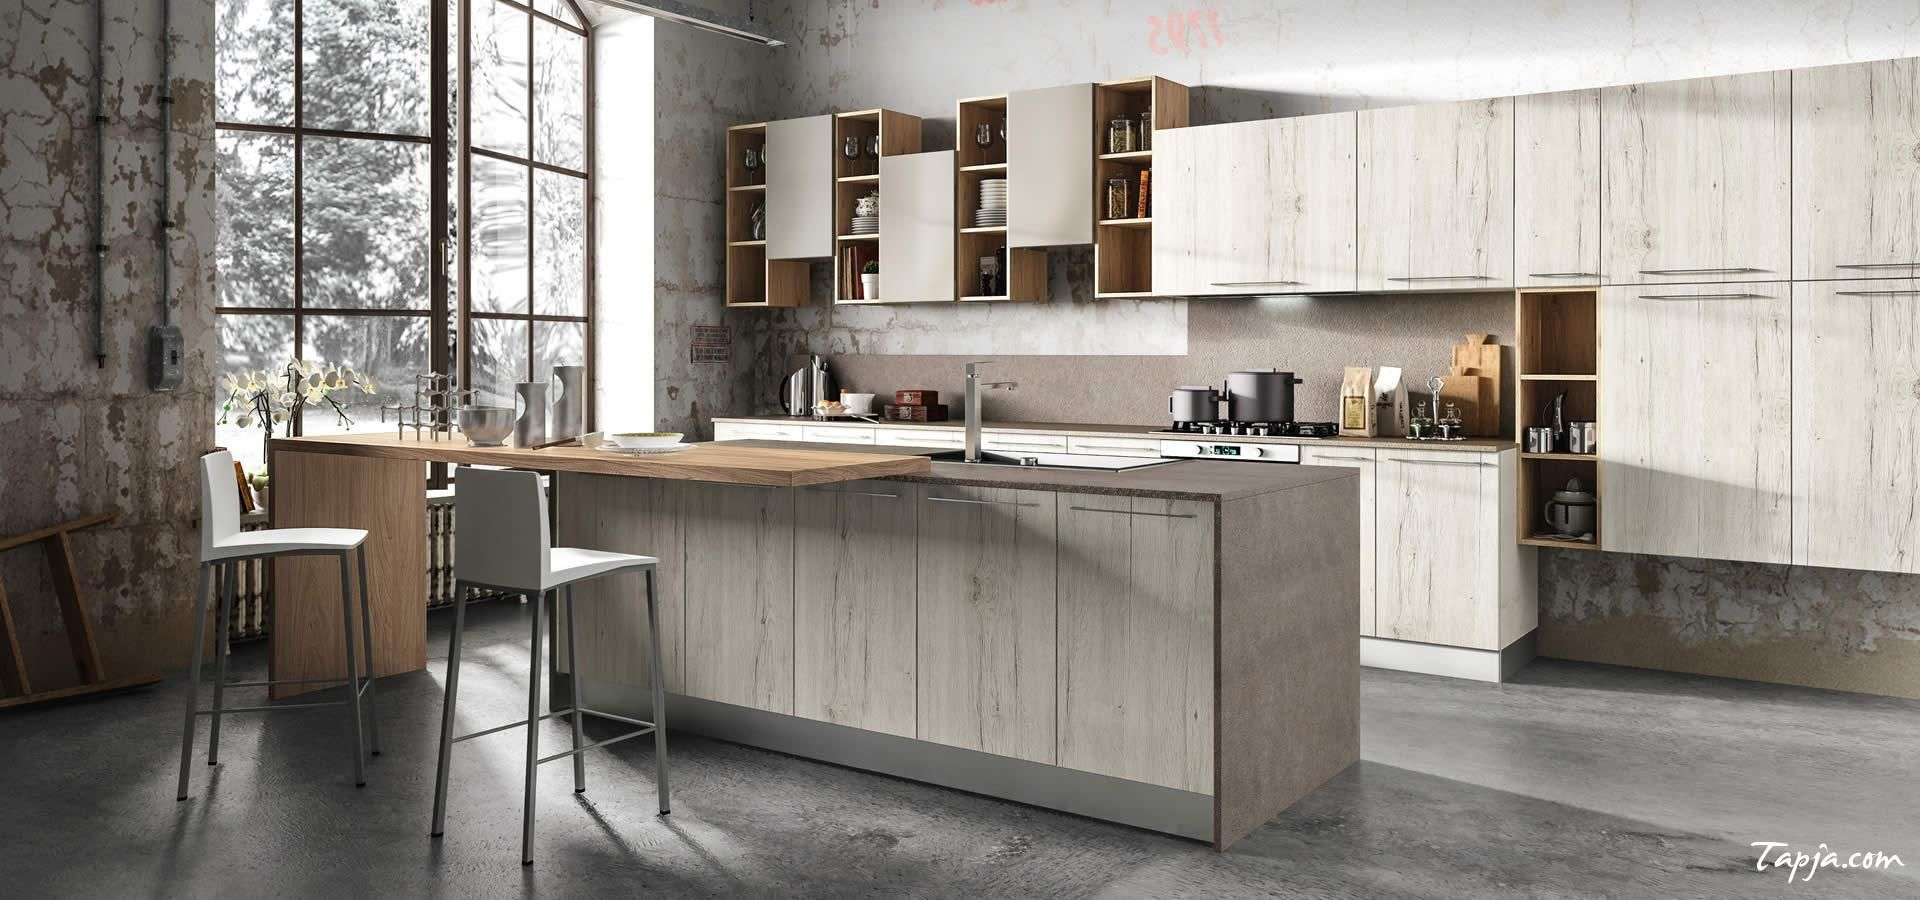 Rustic Italian Modern Kitchen Design With Wooden Cabinet Kitchen